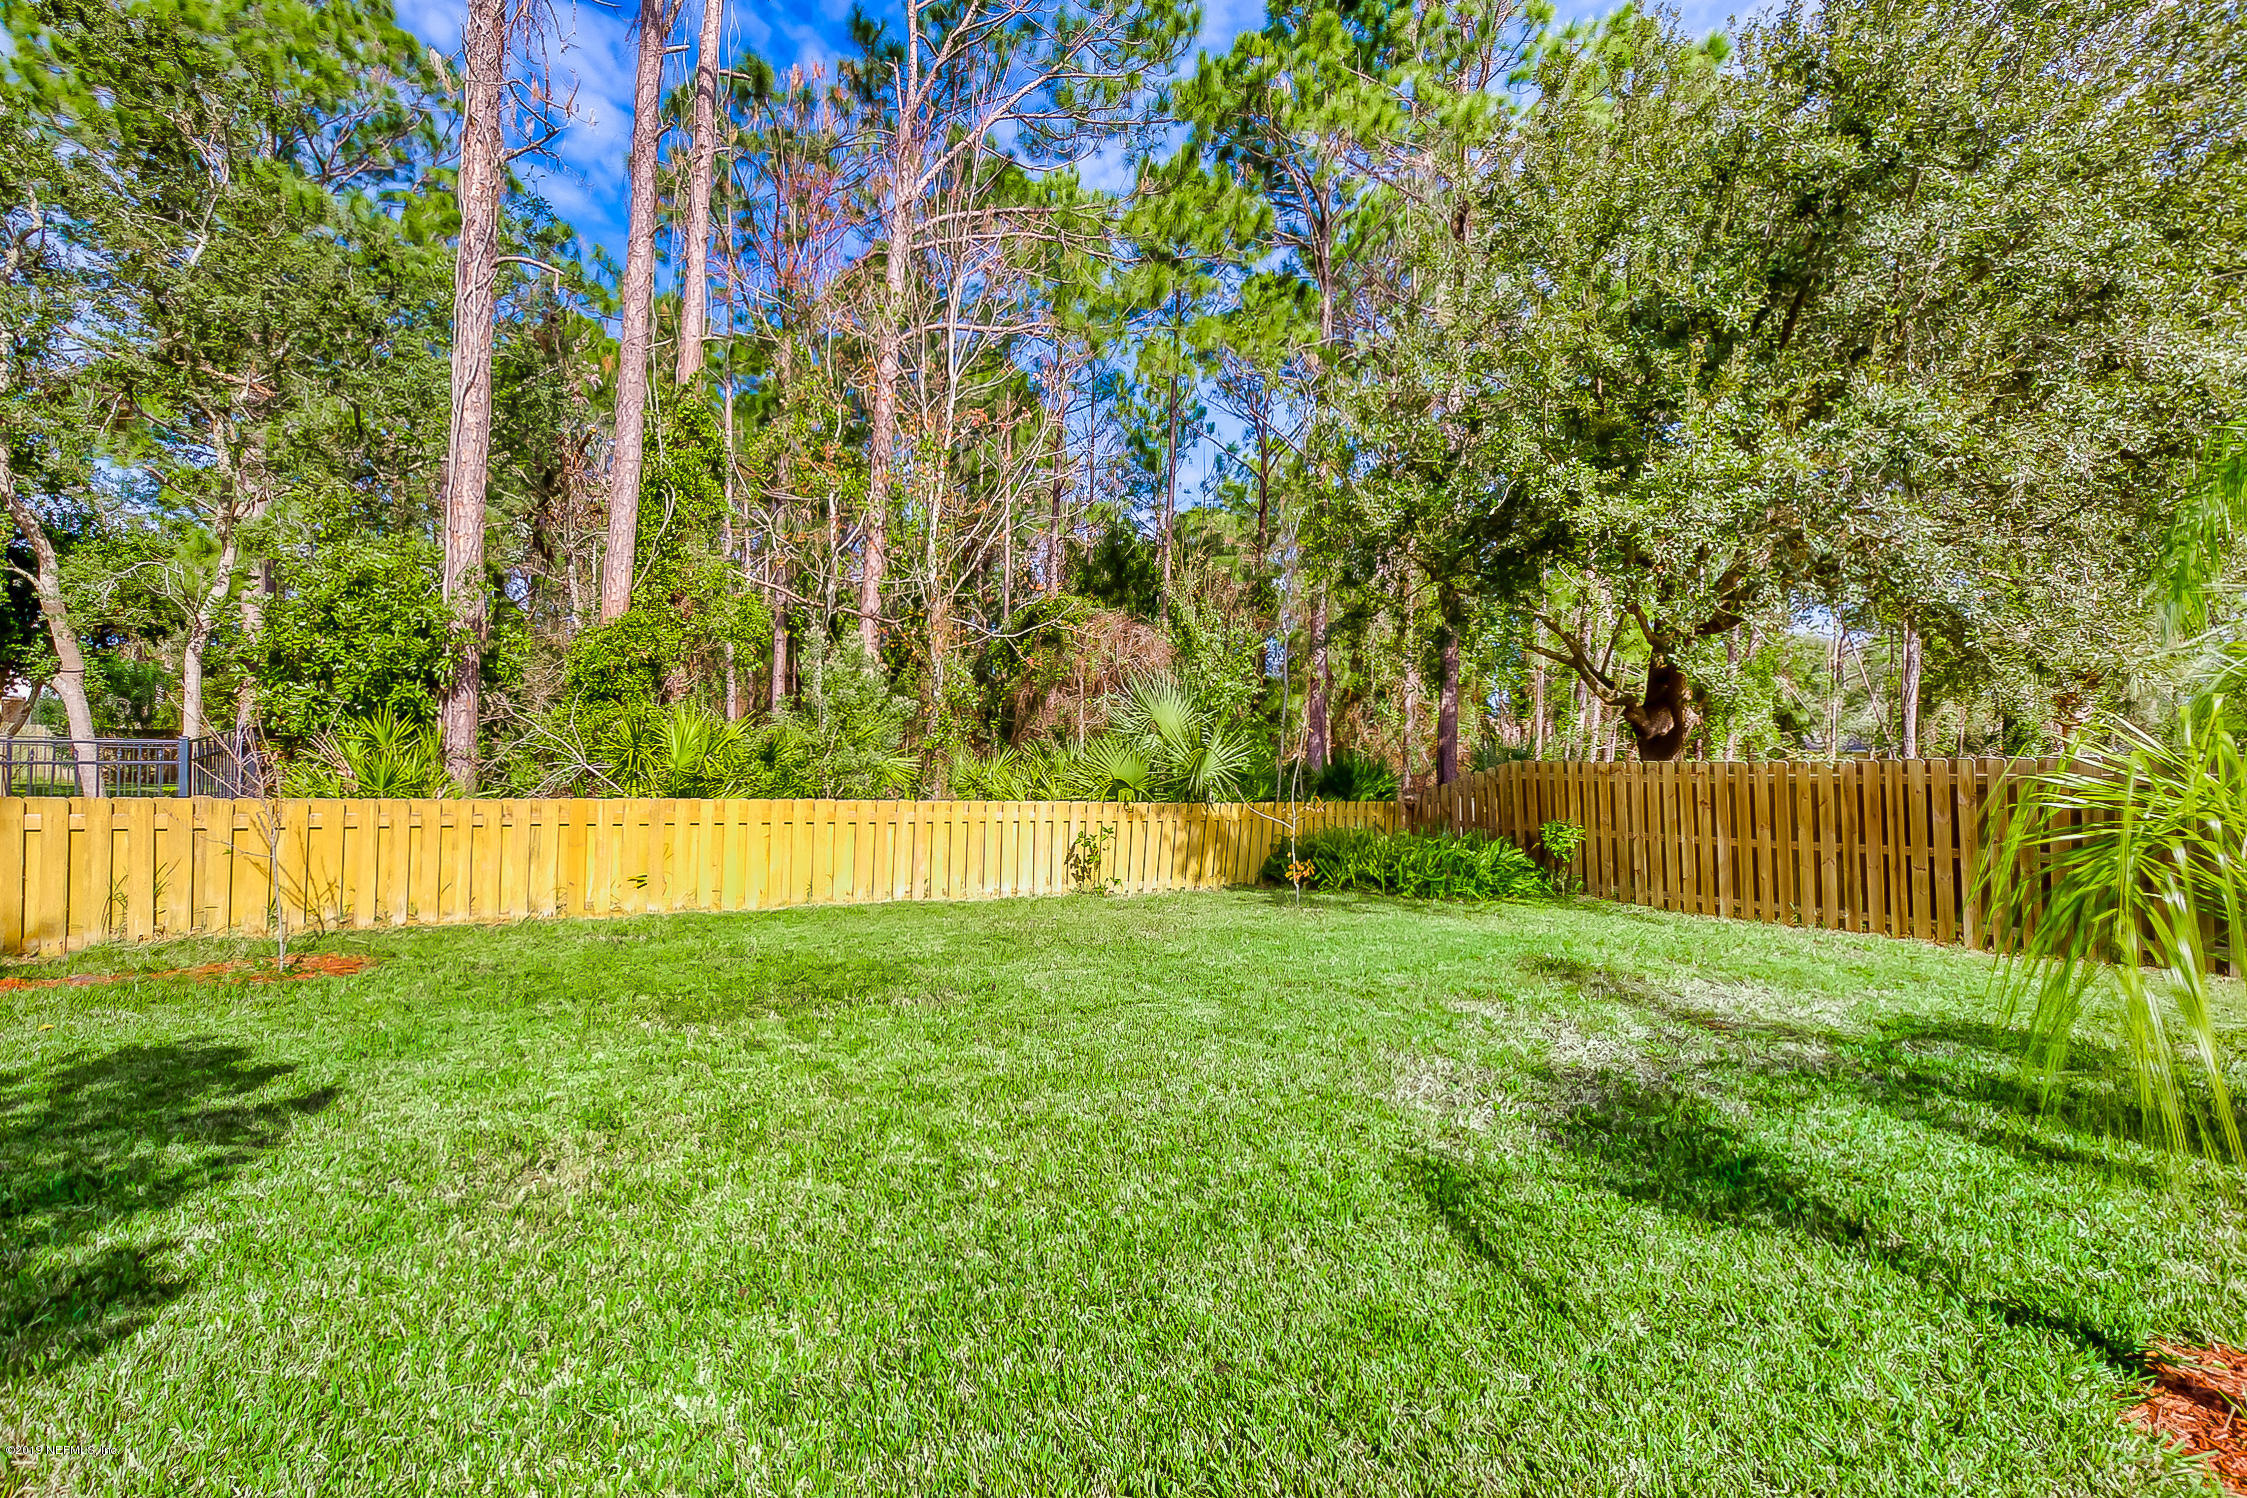 13885 IBIS POINT, JACKSONVILLE, FLORIDA 32224, 4 Bedrooms Bedrooms, ,2 BathroomsBathrooms,Residential - single family,For sale,IBIS POINT,974168